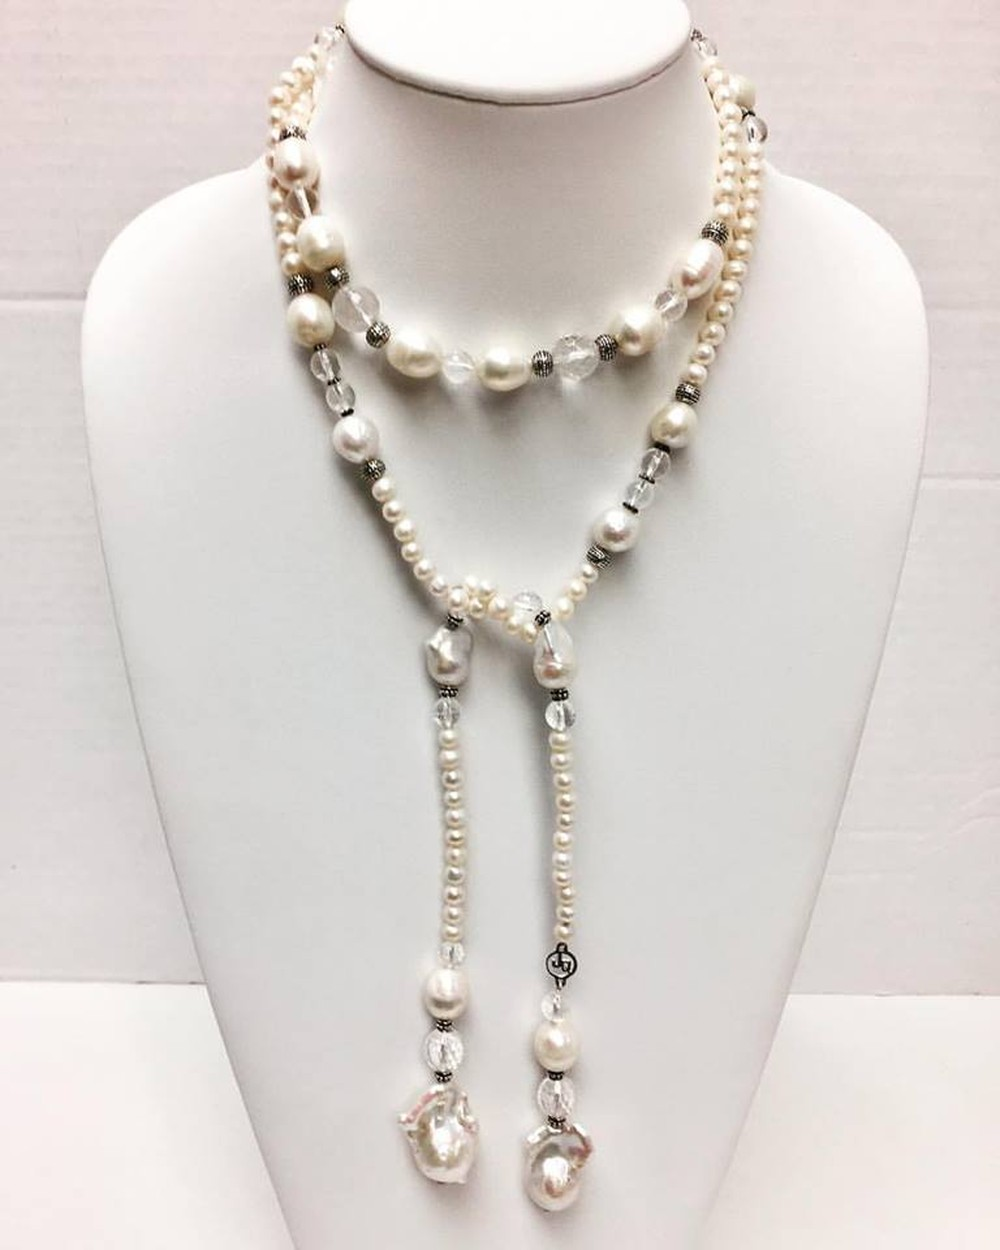 Neck Candy Necklace in Pearl and Quartz